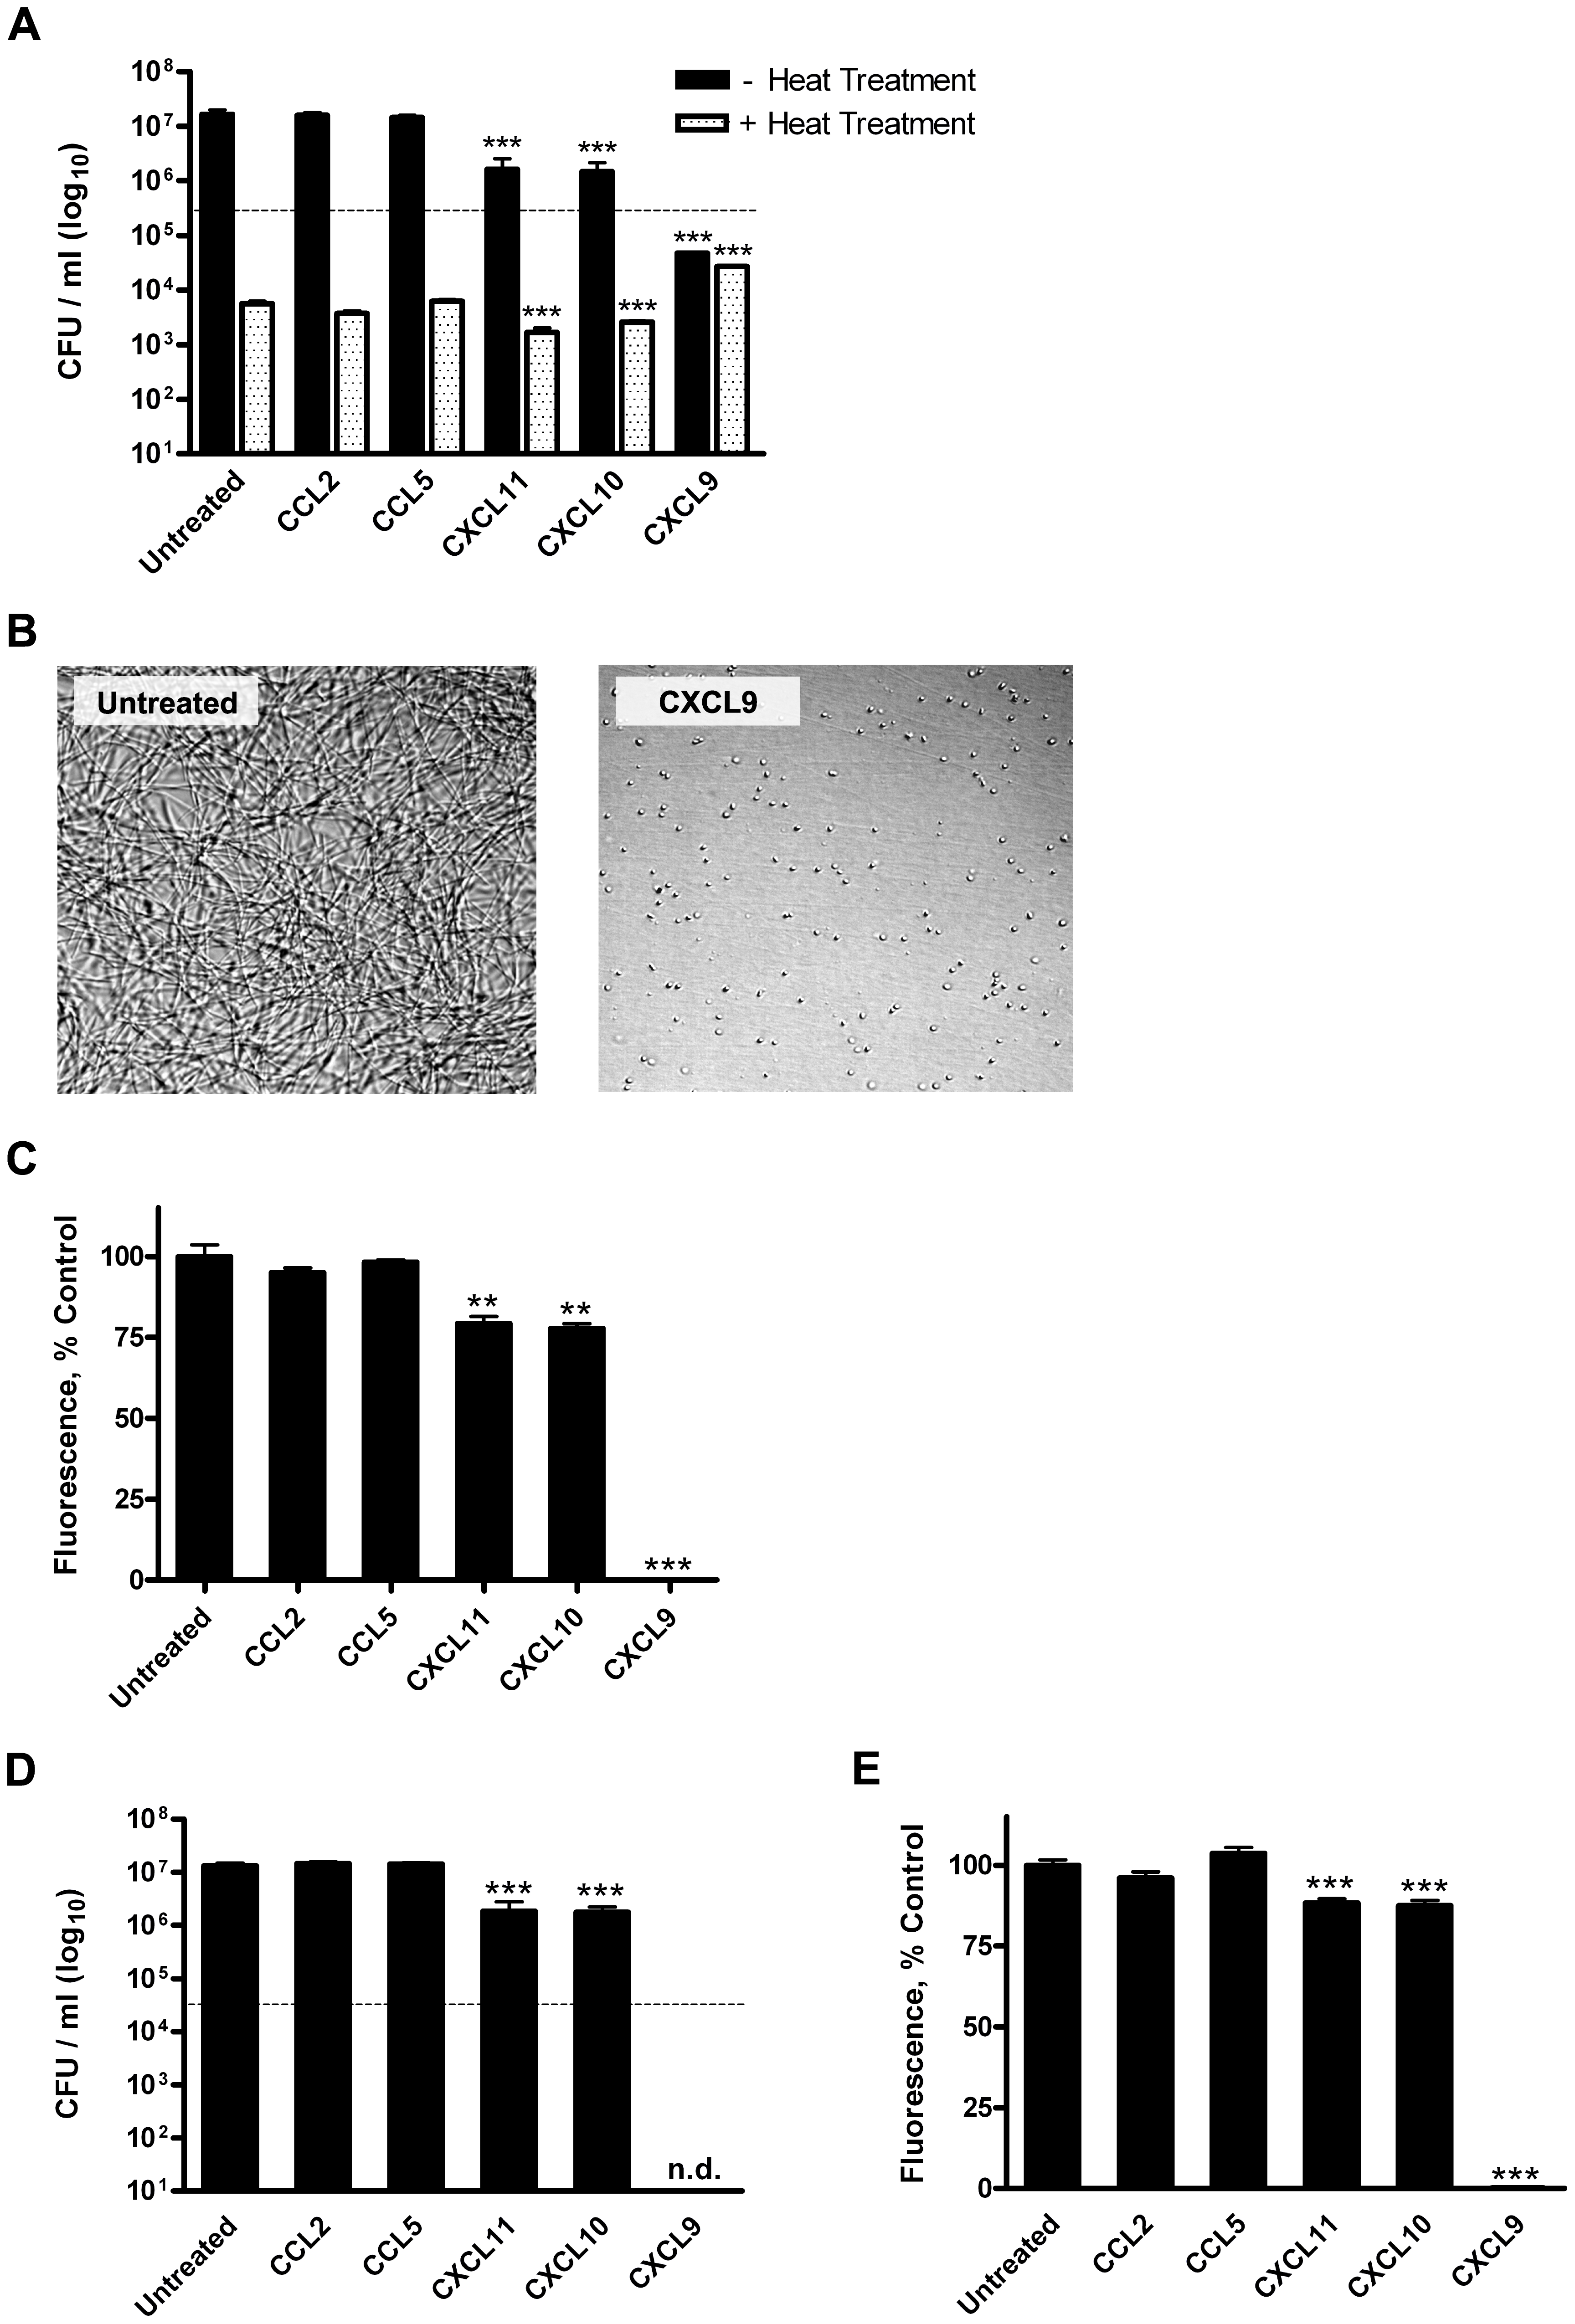 Direct chemokine-mediated antimicrobial effects against <i>B. anthracis</i> Sterne strain spores and bacilli.